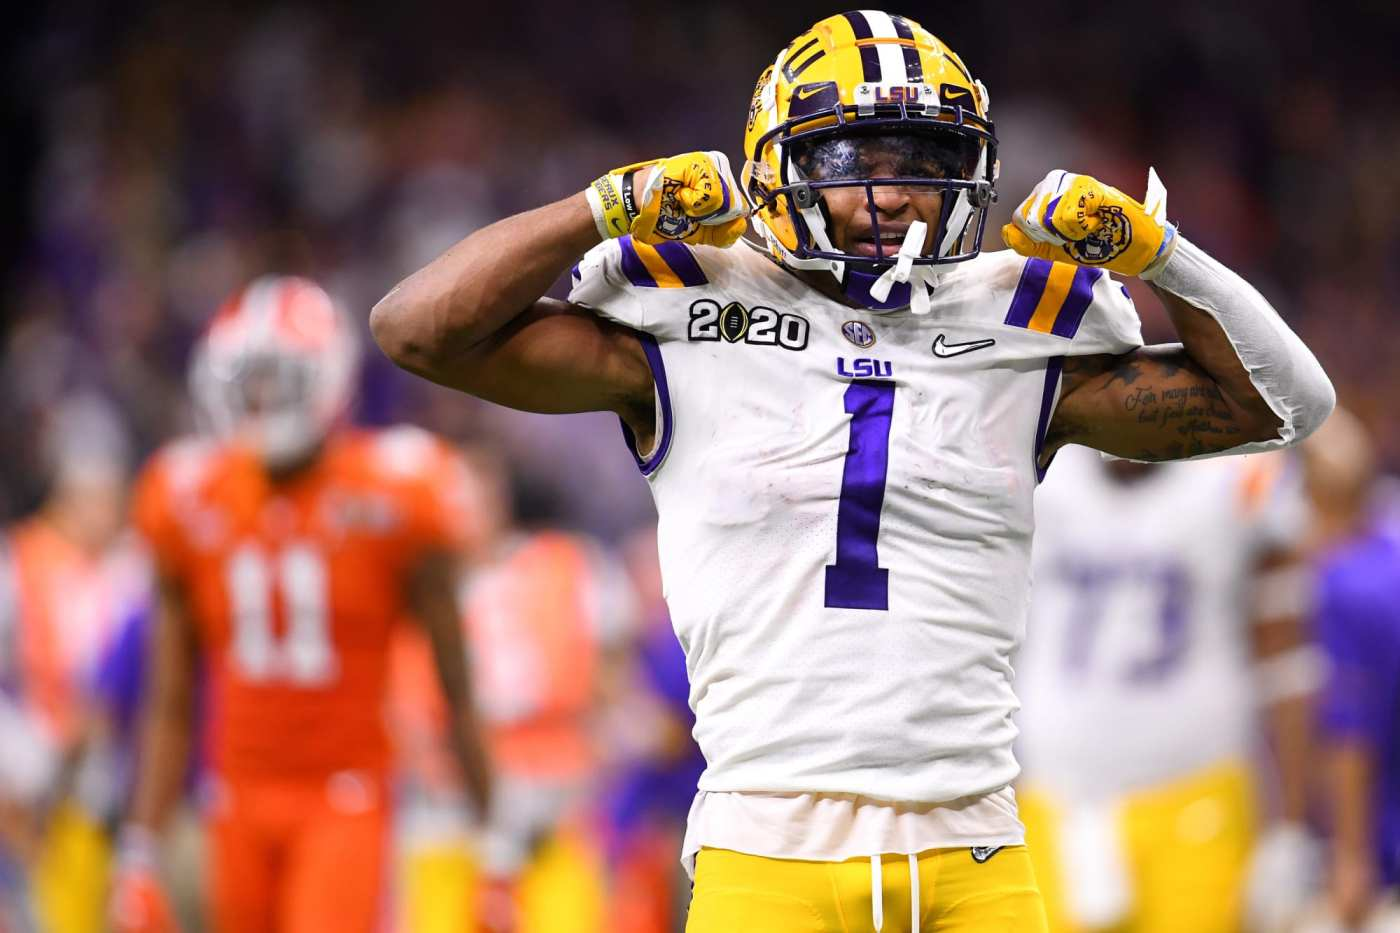 Despite opting out of the 2020 college football season, Ja'Marr Chase is expected to be one of the first wide receivers off the board in the 2021 NFL Draft